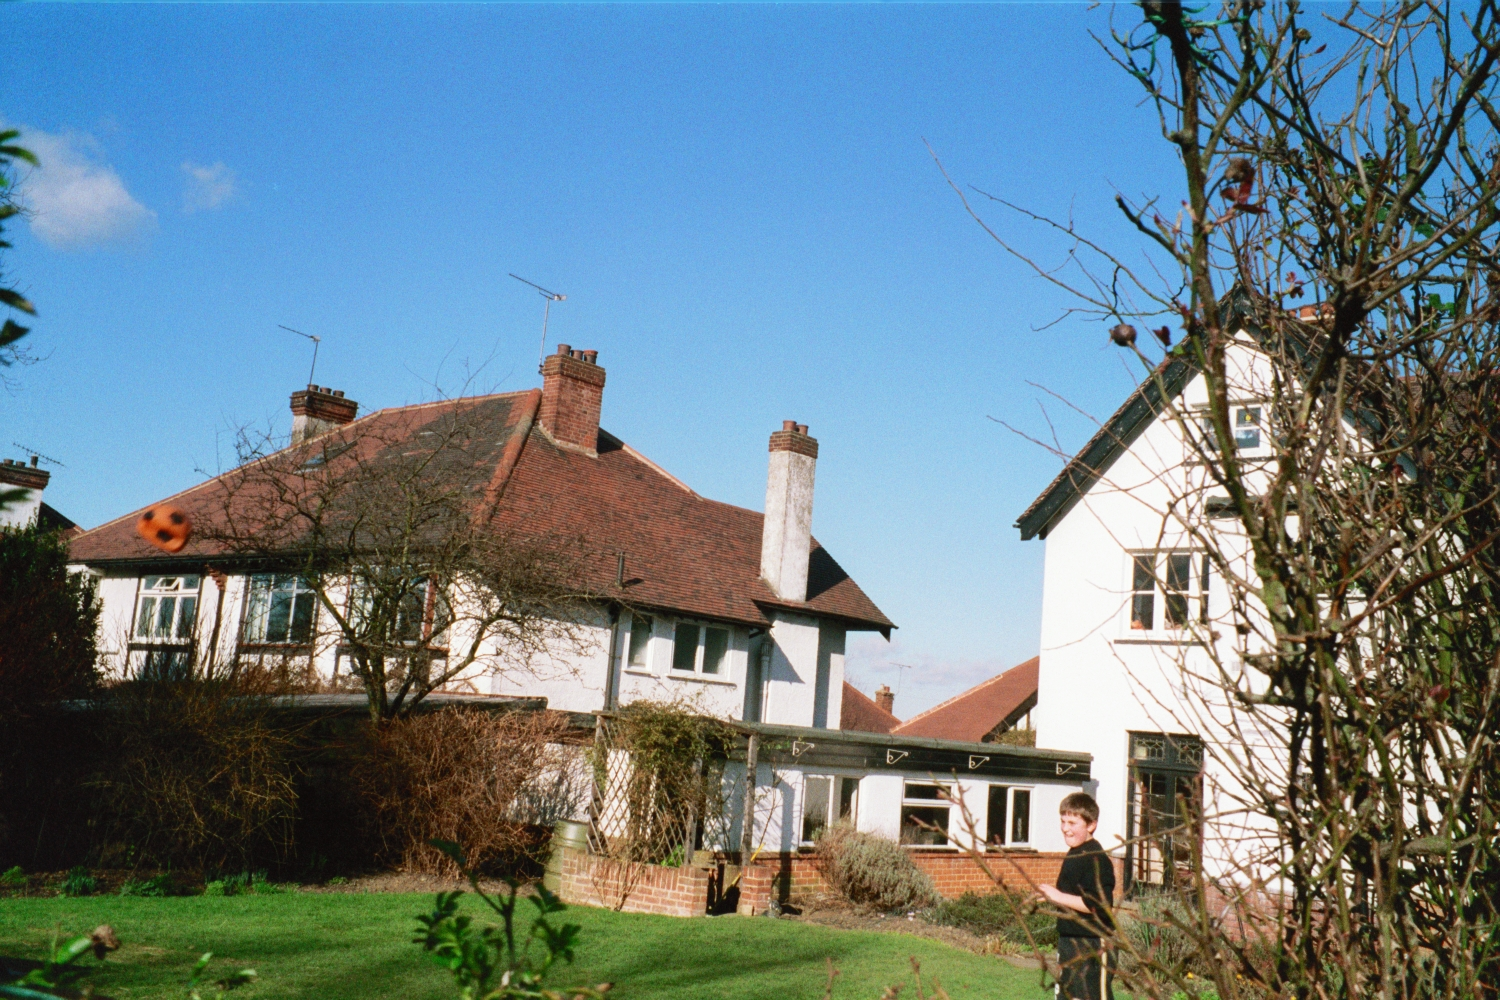 The garden in Woodford in 1990 - before the conservatory